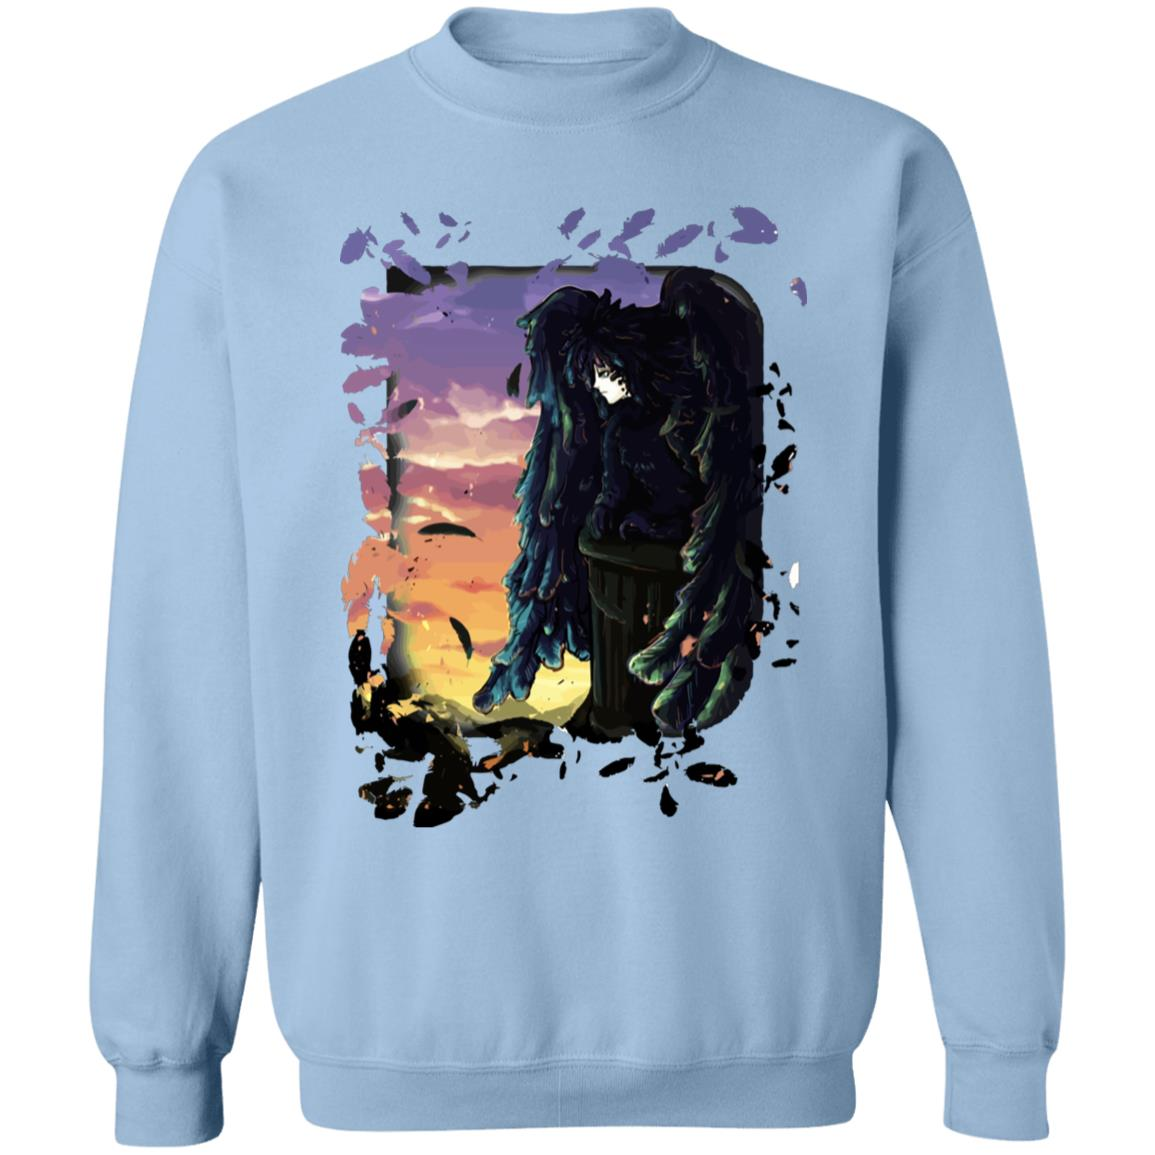 Howl's Moving Castle – Howl's Beast Form Sweatshirt